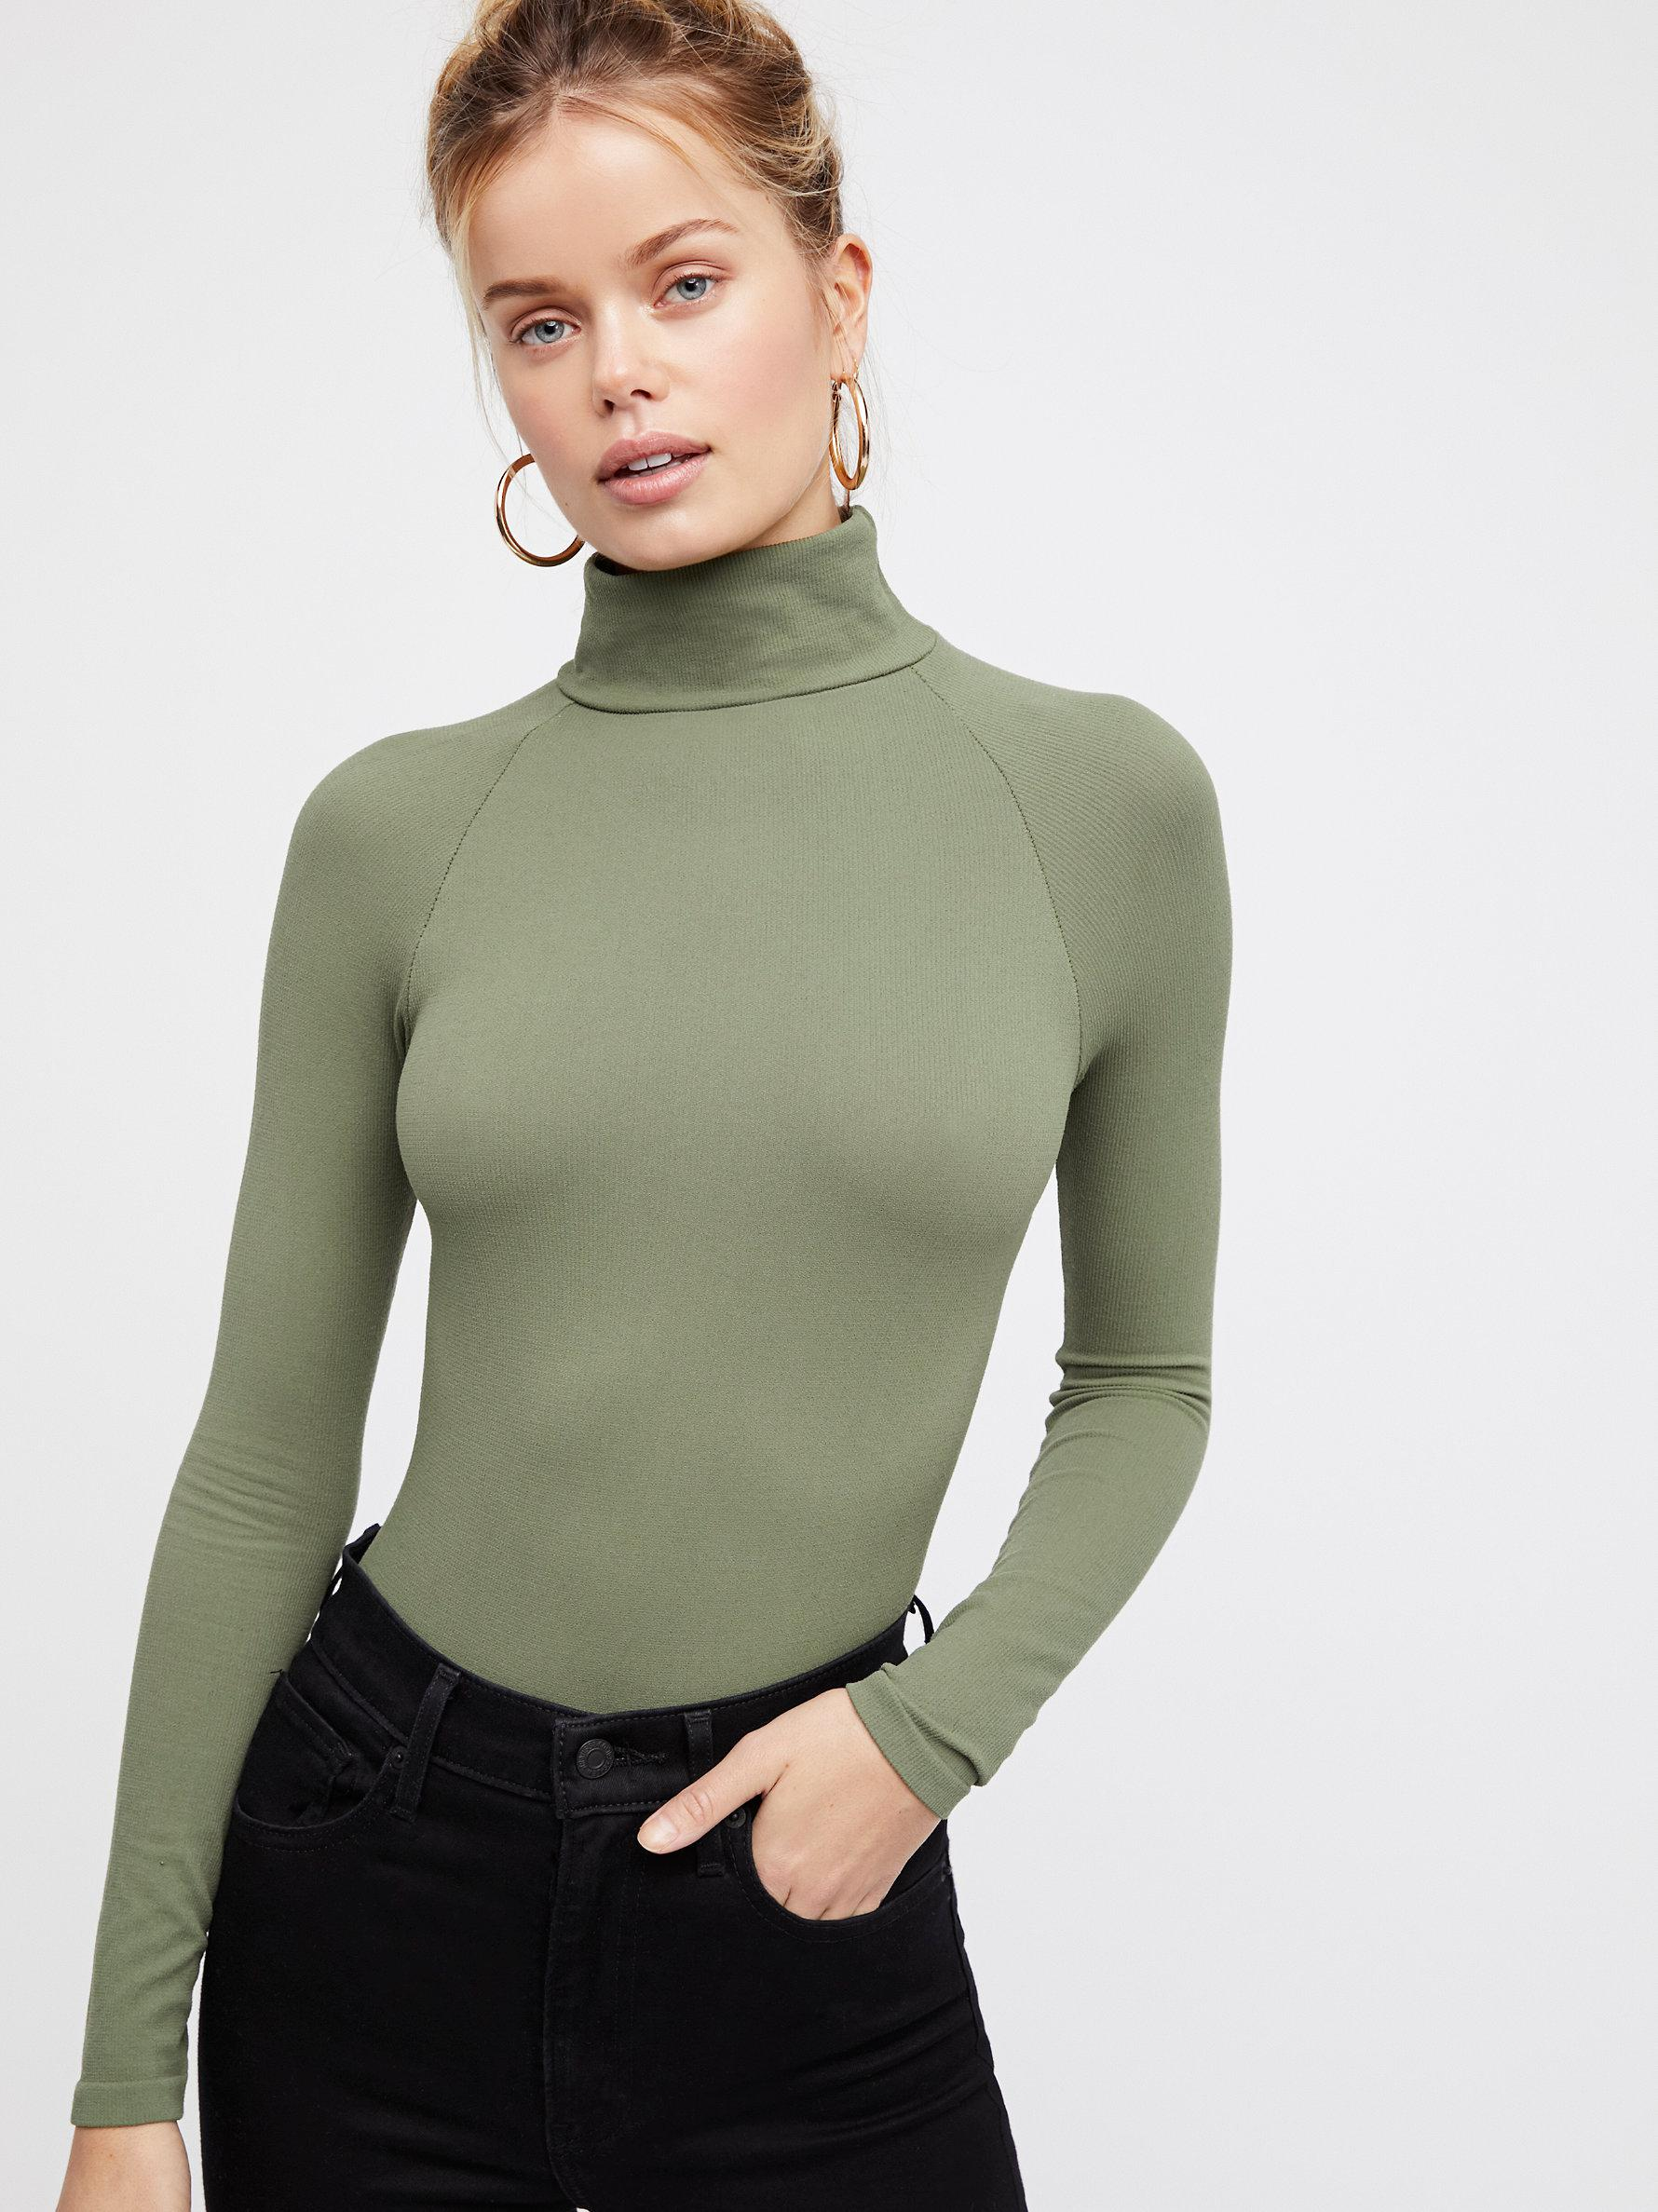 New-Free-People-Womens-Ribbed-Long-Sleeve-Seamless-Turtleneck-Bodysuit-Top-48 thumbnail 56